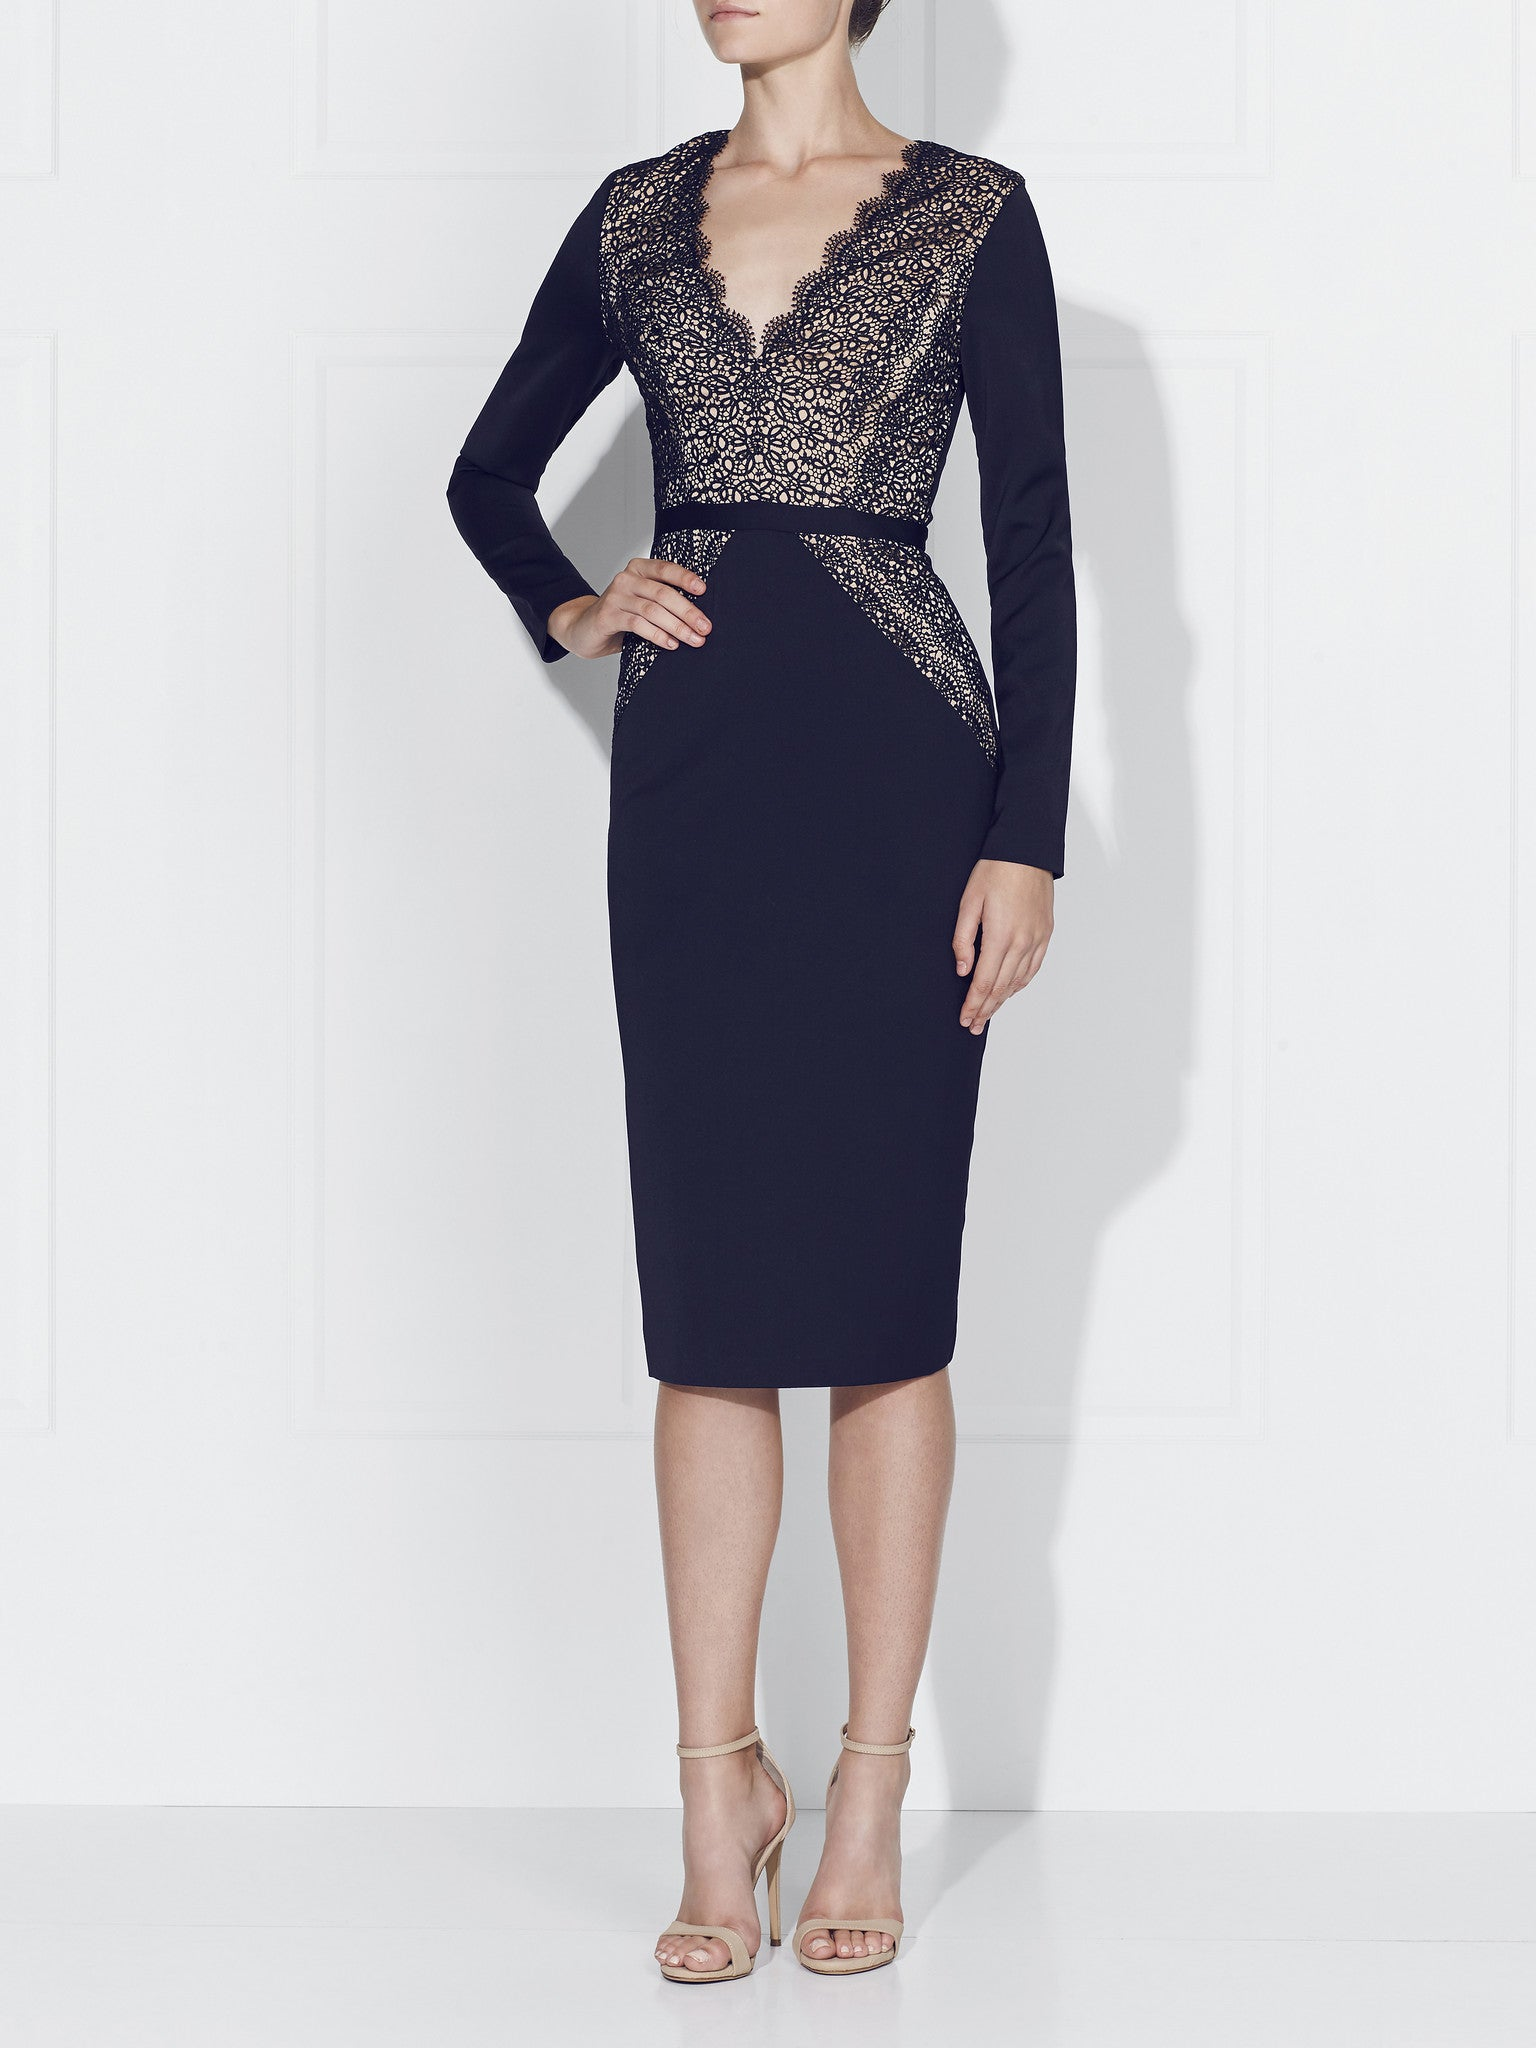 STEFANA DRESS- NAVY